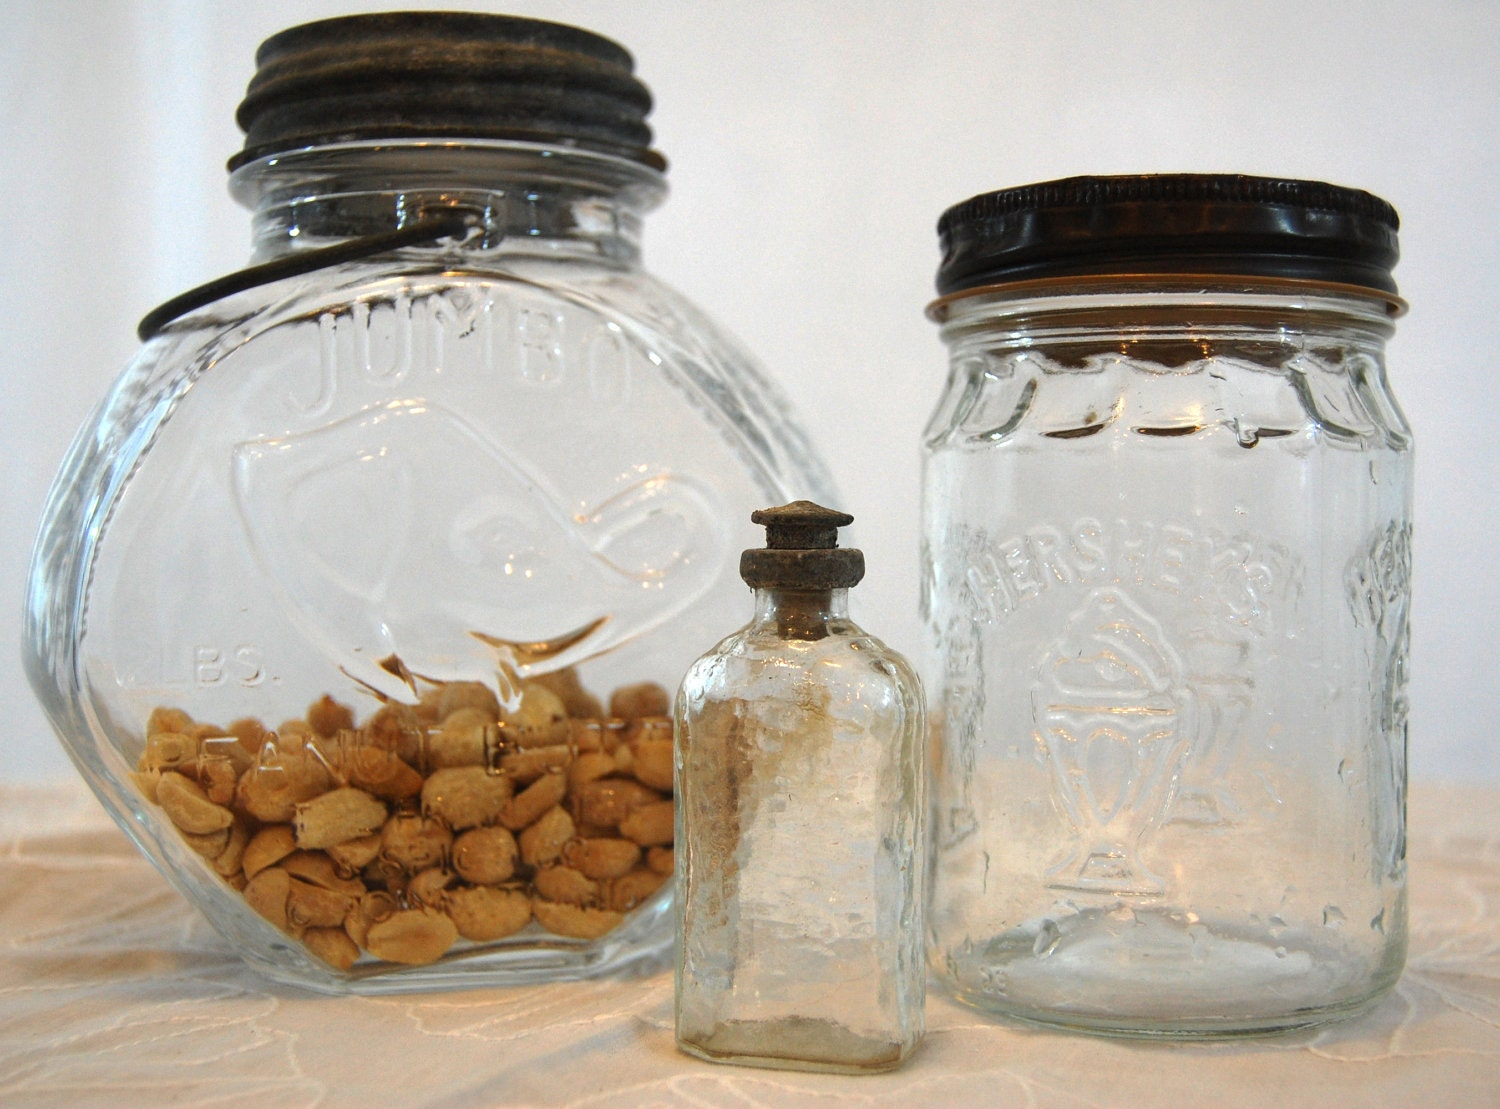 Instant Collection of Vintage Clear Glass Jars and Bottle - TheEclecticInterior